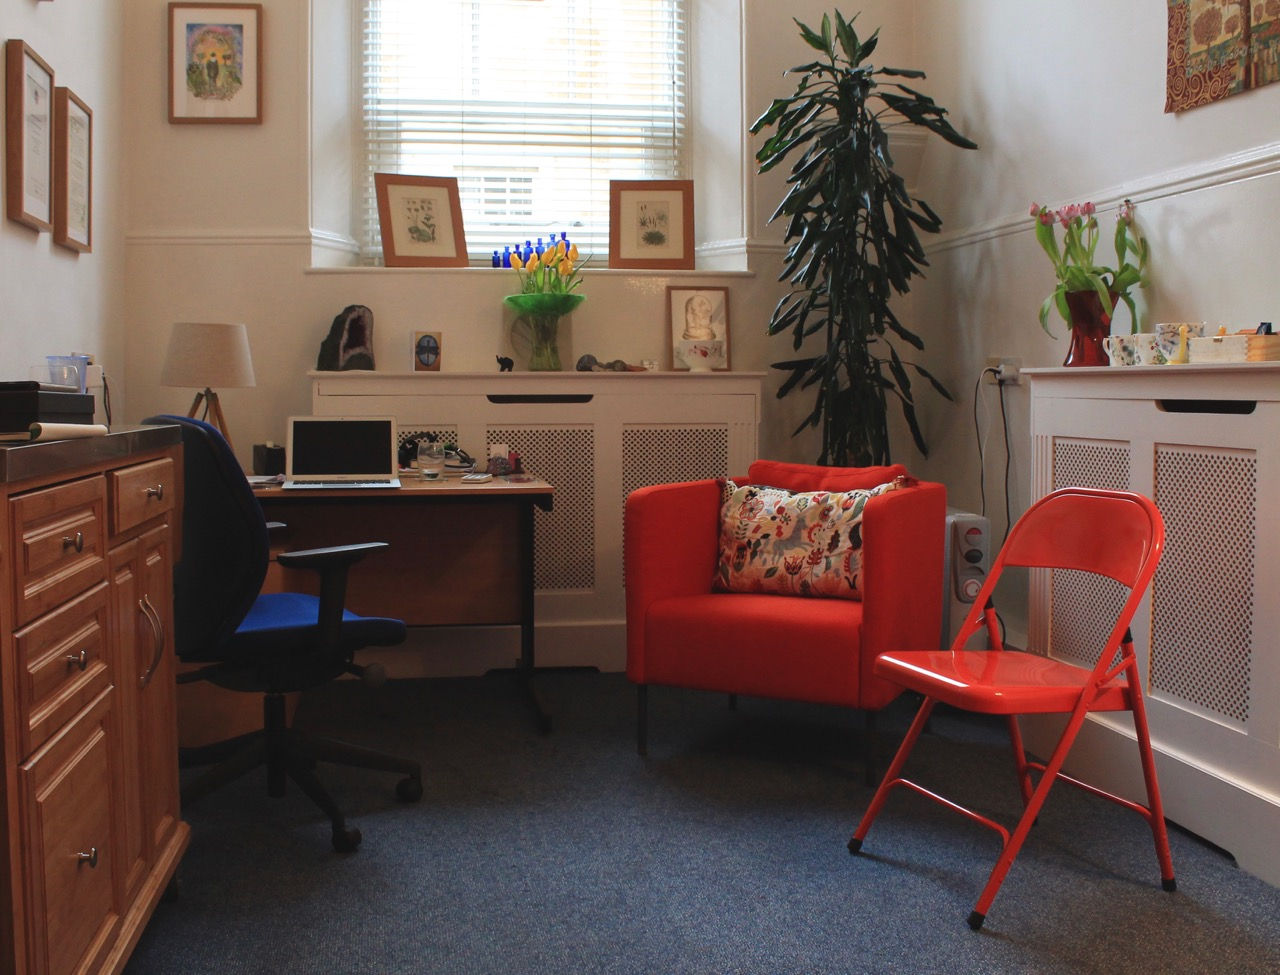 Room interior with bright colours, desk and 2 chairs.